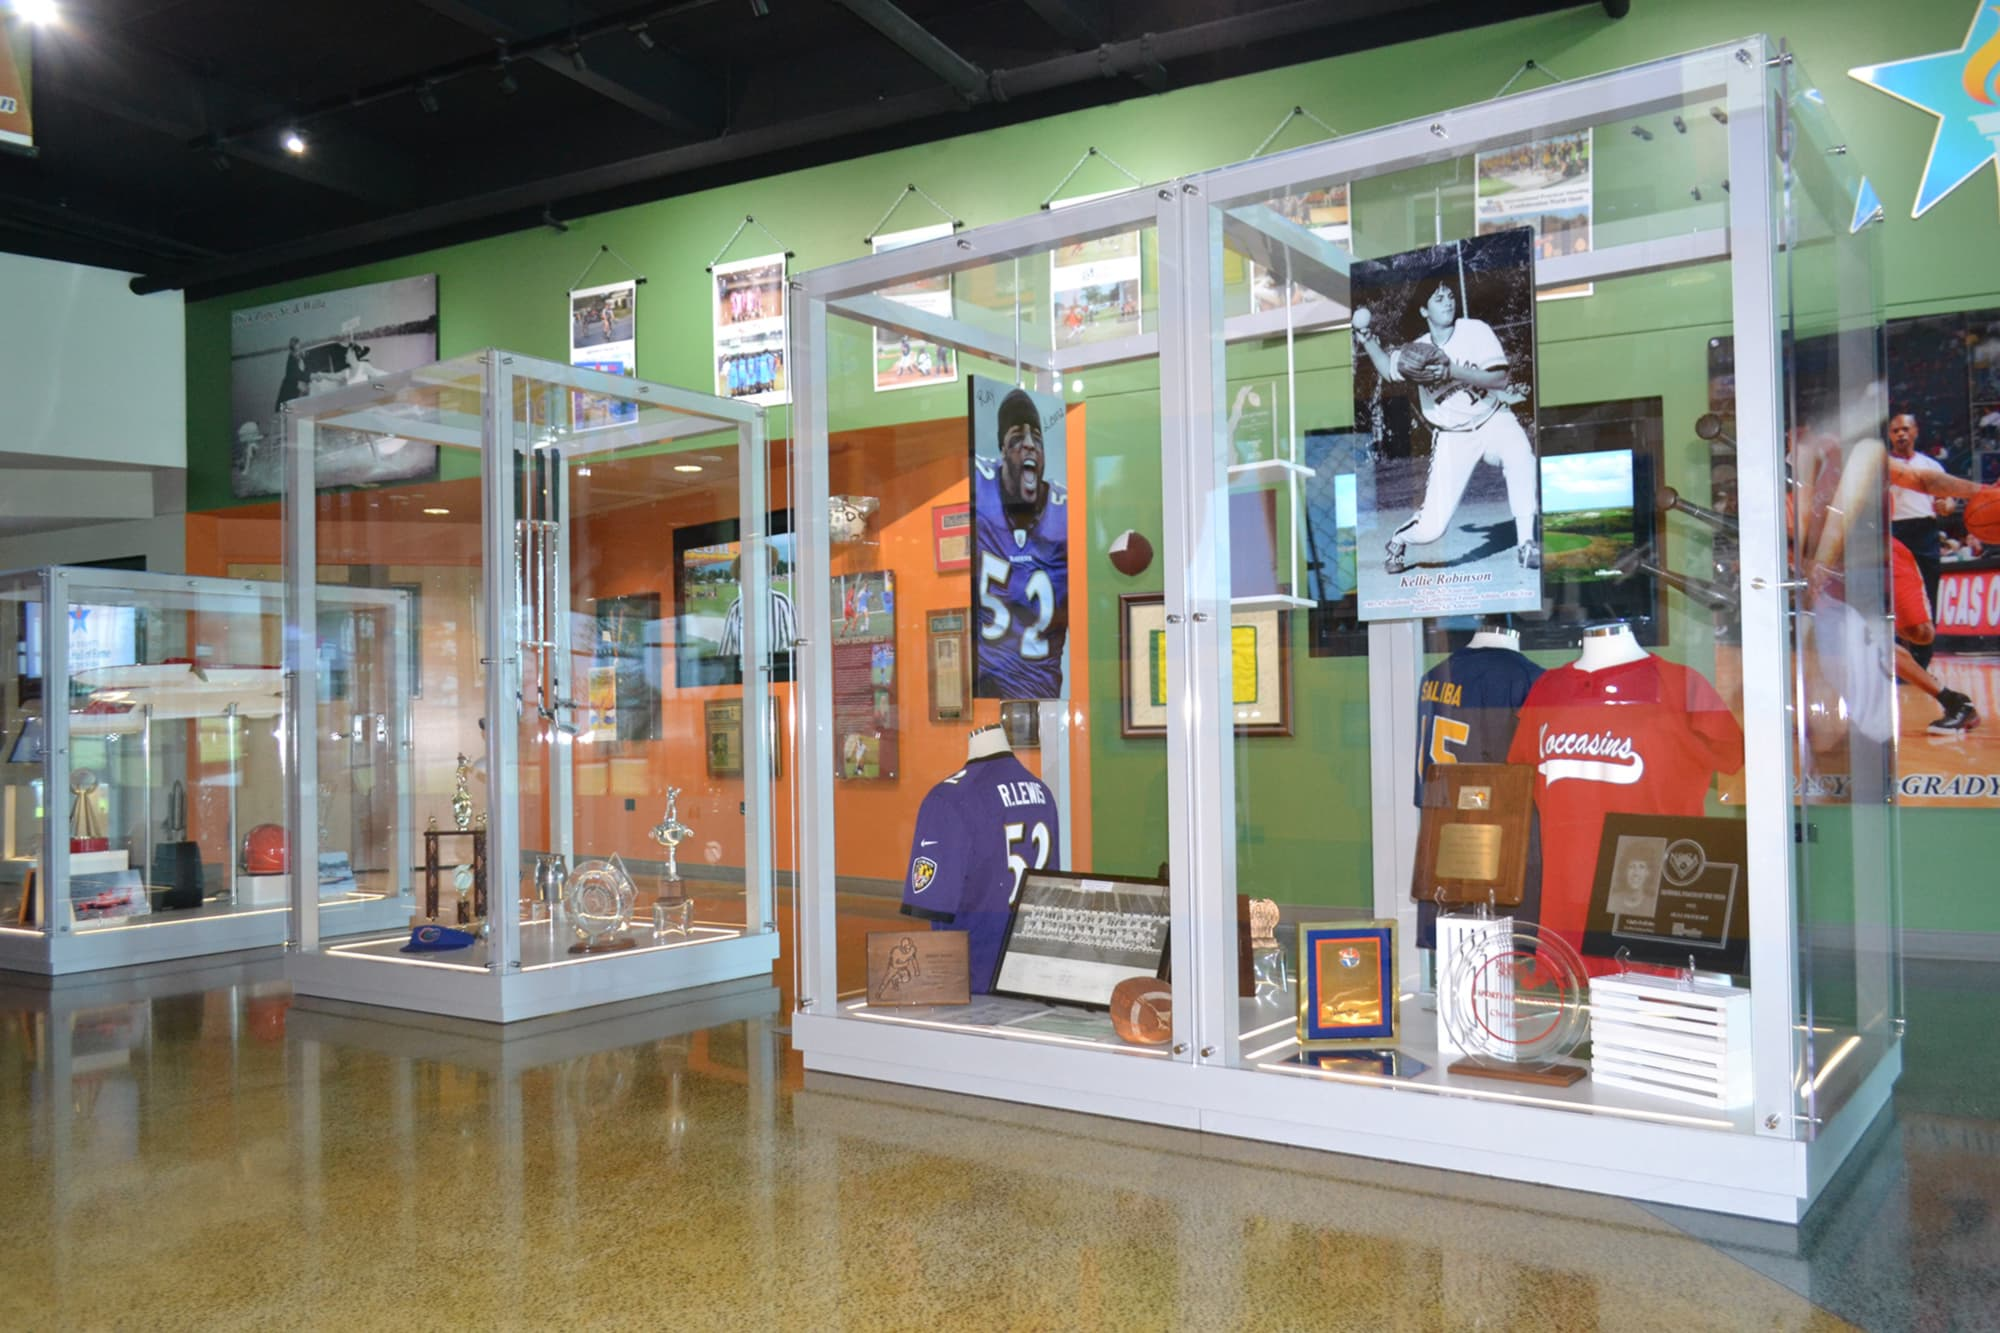 Sports memorabilia and exhibits inside Polk County Sports Hall of Fame in Auburndale, FL